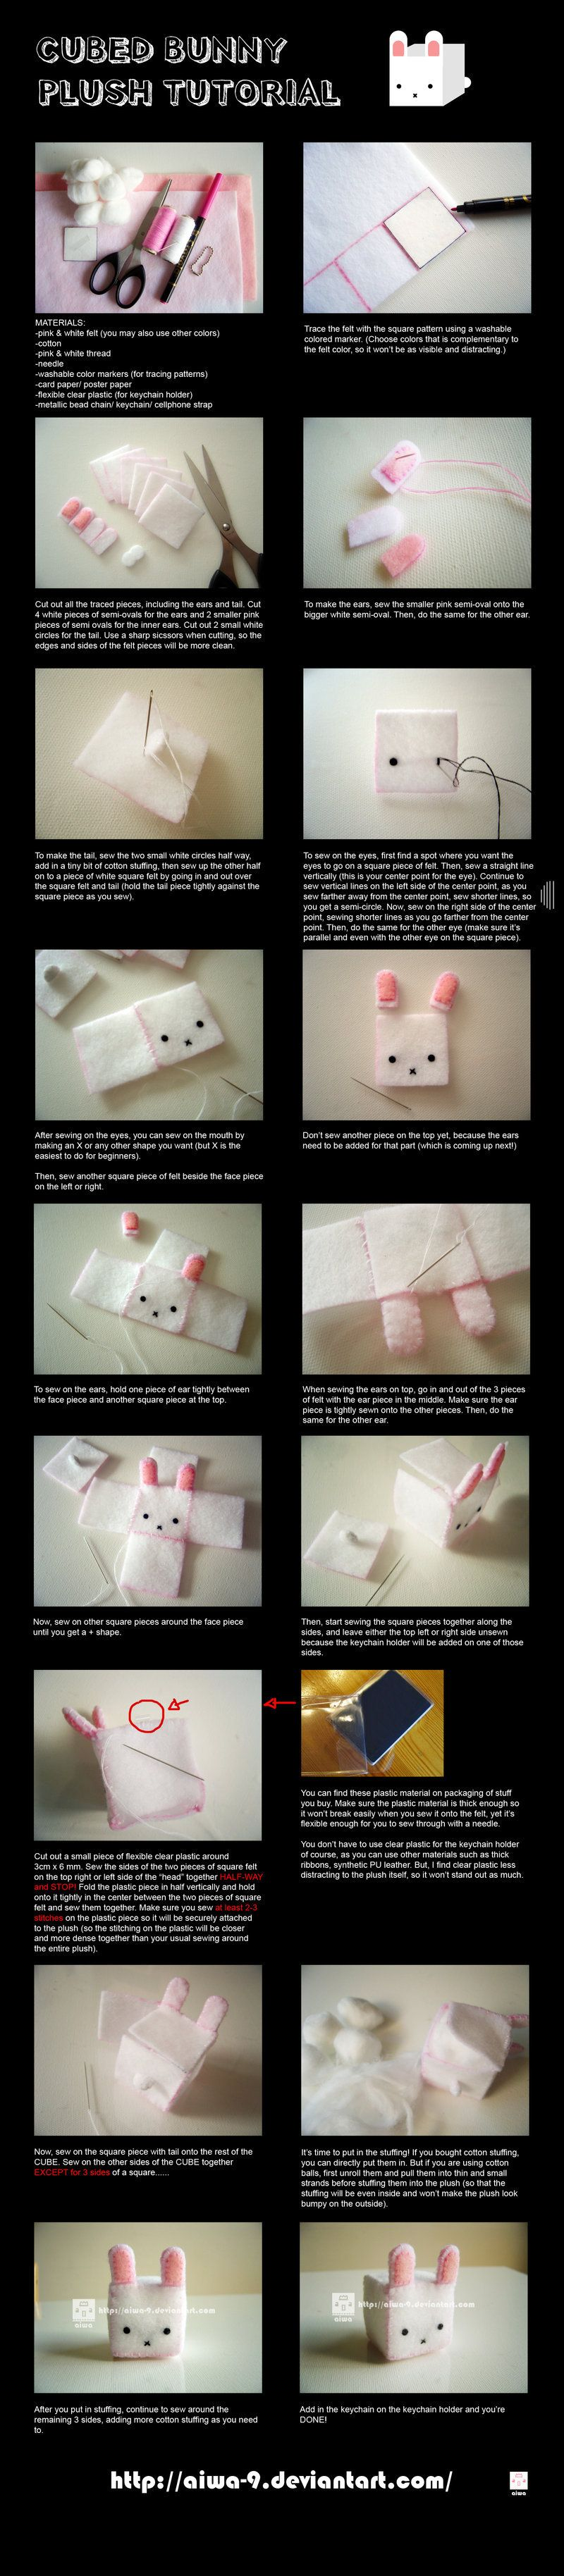 The CUBED Bunny Plush TUTORIAL is finally done XD This is the bunny from my 2nd CUBED series You can also try making other cubed plush using this tutorial. Enjoy~ If you still have questions, you c... #bunnyplush